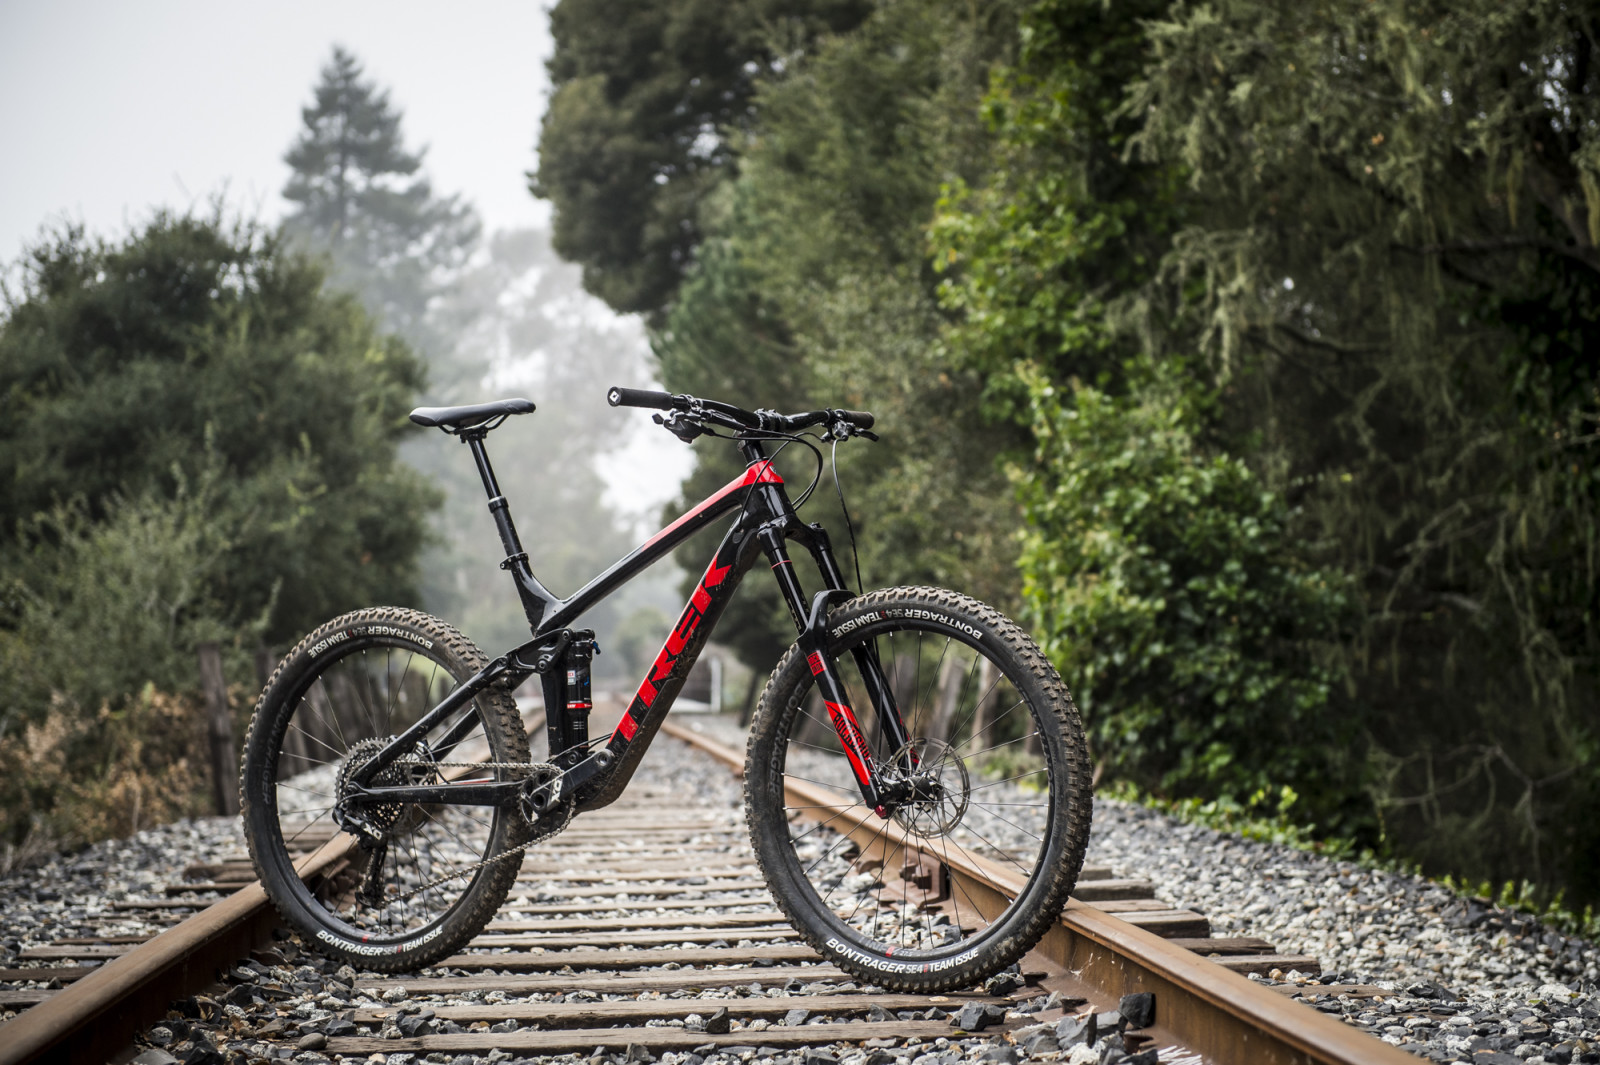 Test] Trek Remedy 9.9 Race Shop Limited | MTB-MAG.COM